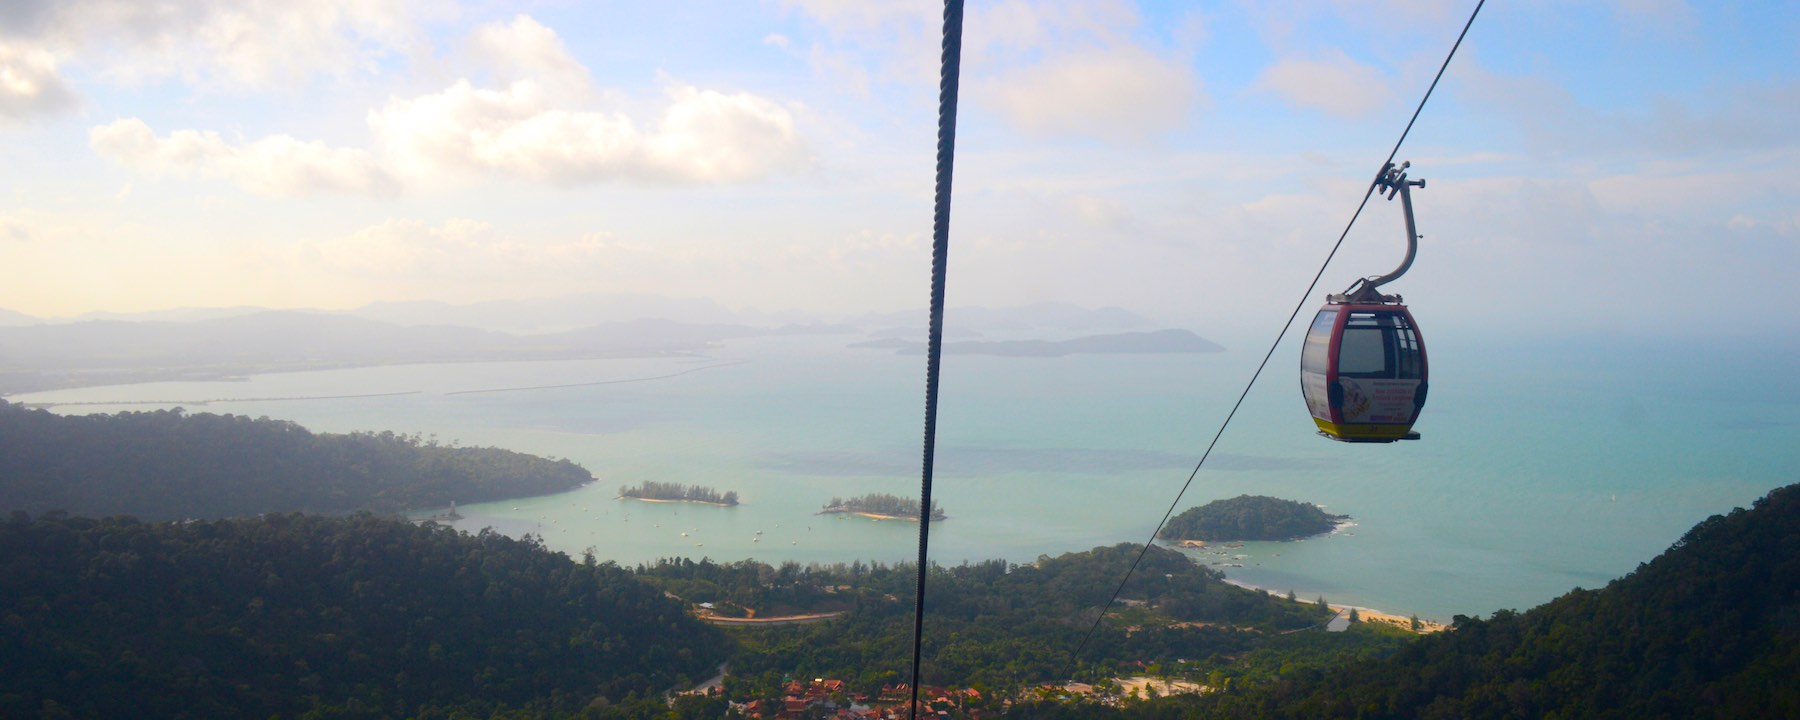 3 Tips for Best Langkawi SkyBridge and Cable Car Experience